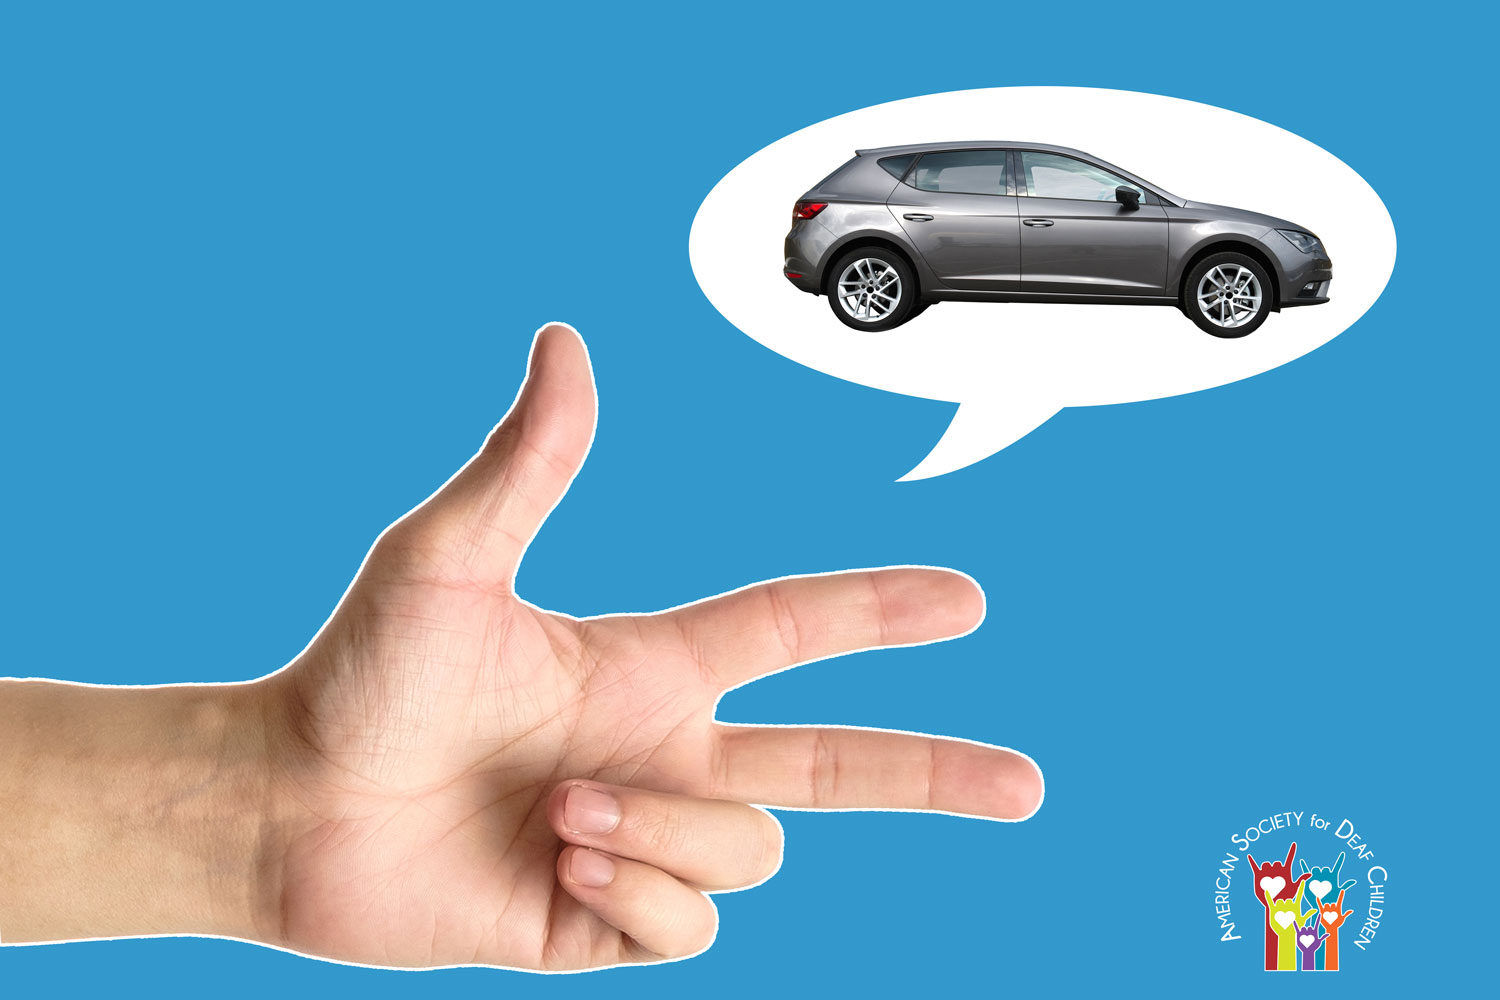 images shows a hand in the 3-hand shape, oriented horizontally. Above it is a speech balloon with a grey car in it.